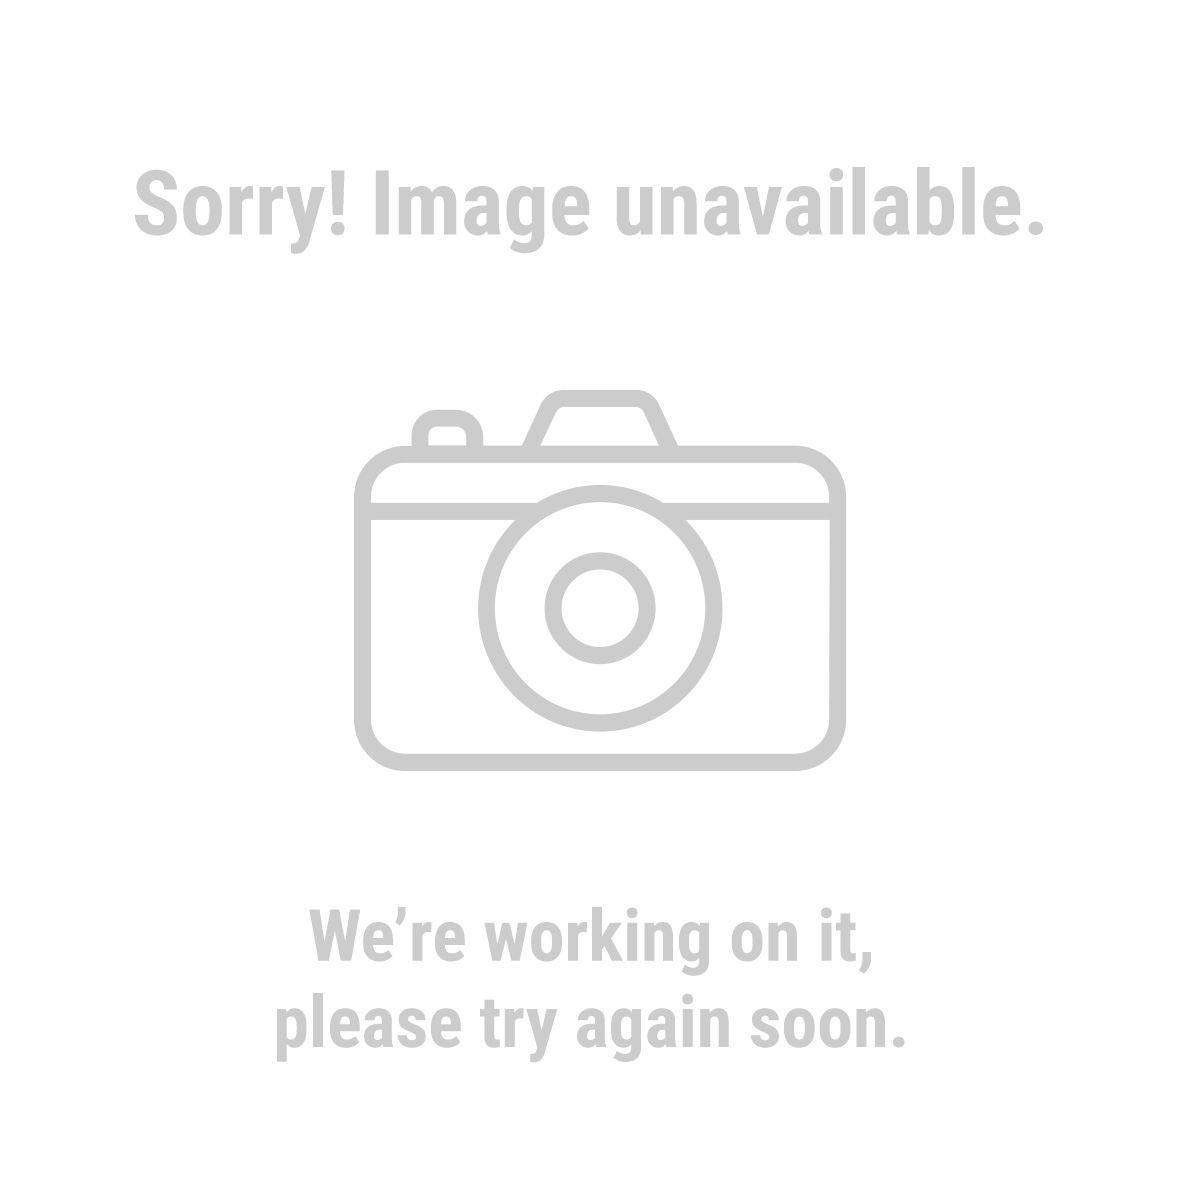 63008 32 in. x 10 in. x 15 in. Medium Animal Trap